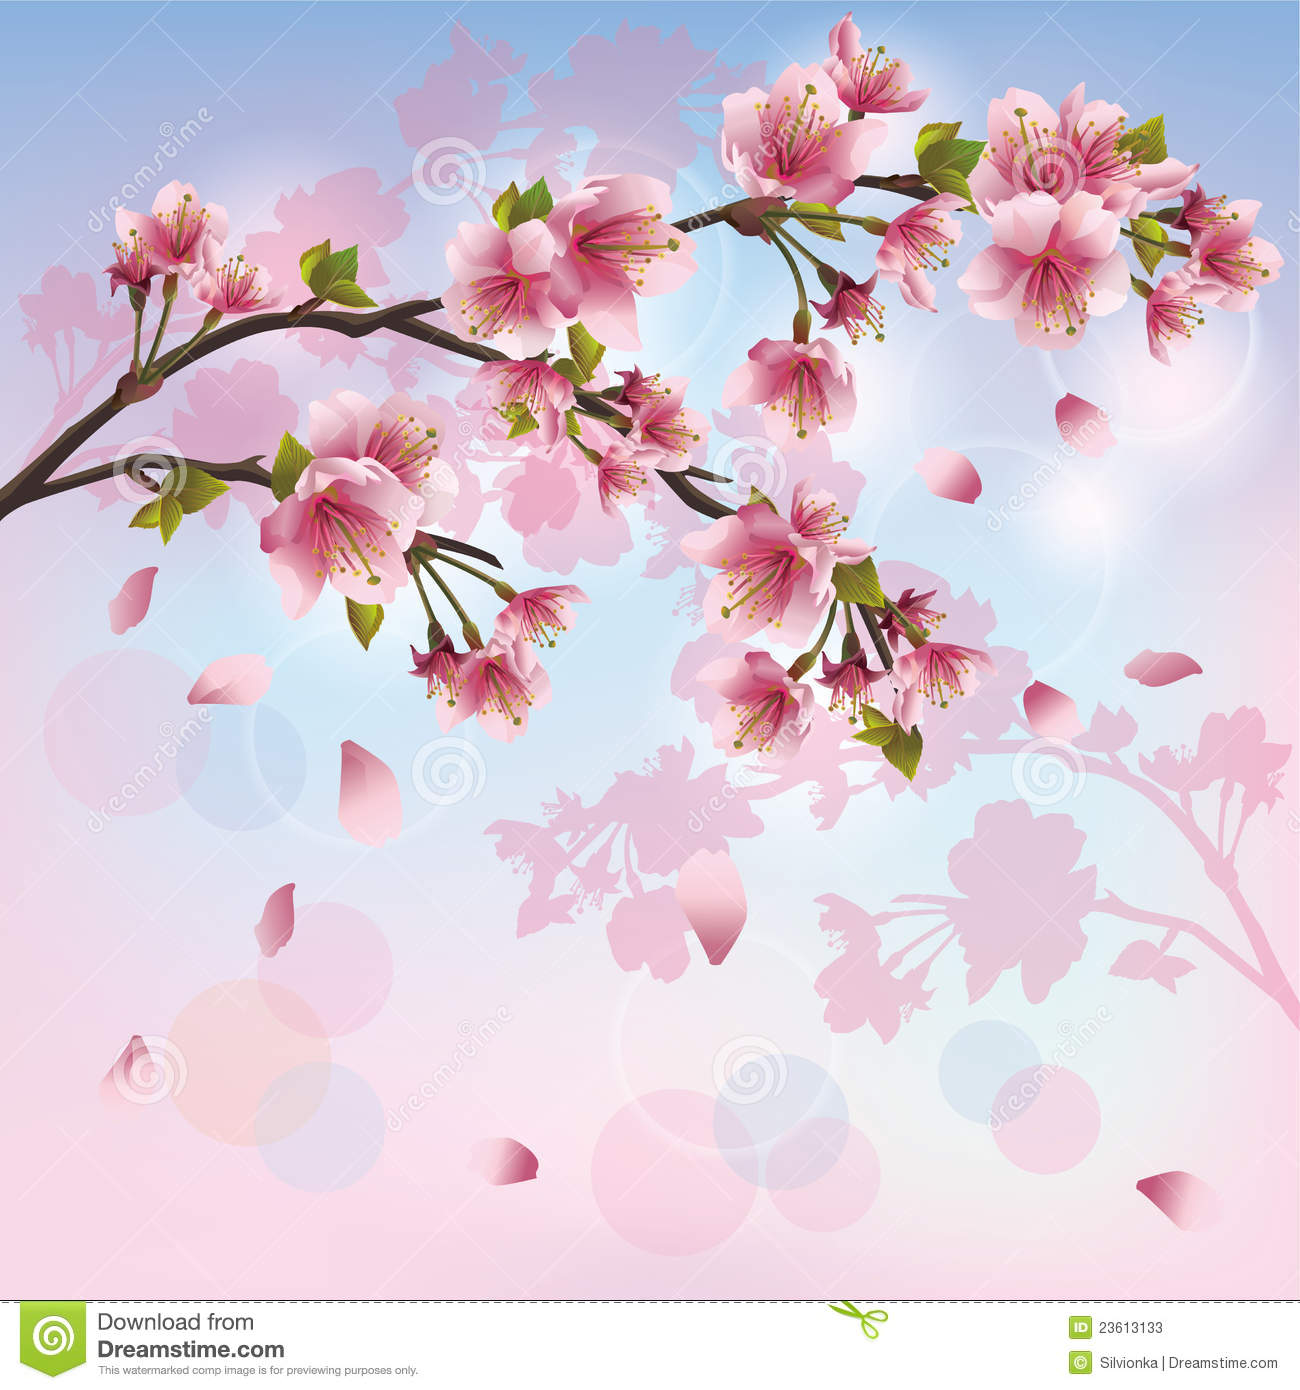 Sakura Blossom - Japanese Cherry Tree Background Stock Photos - Image ...